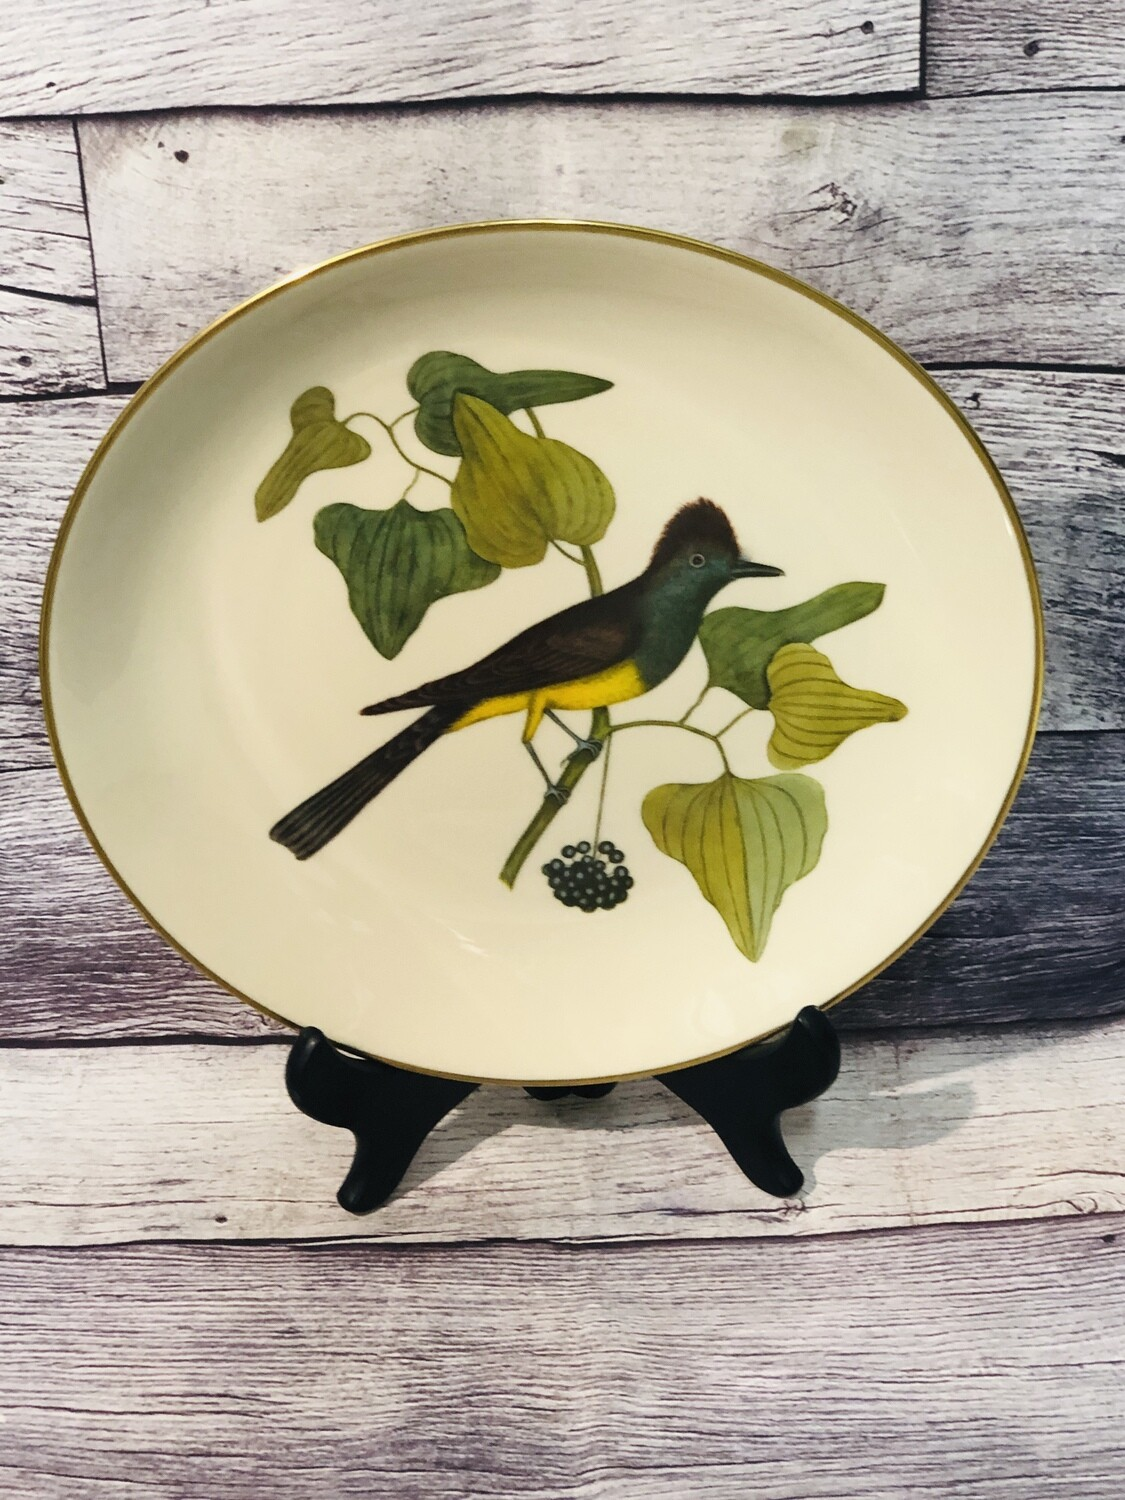 Limited Edition GORHAM Fine China Catesby Collection Crested Fly Catcher Plate